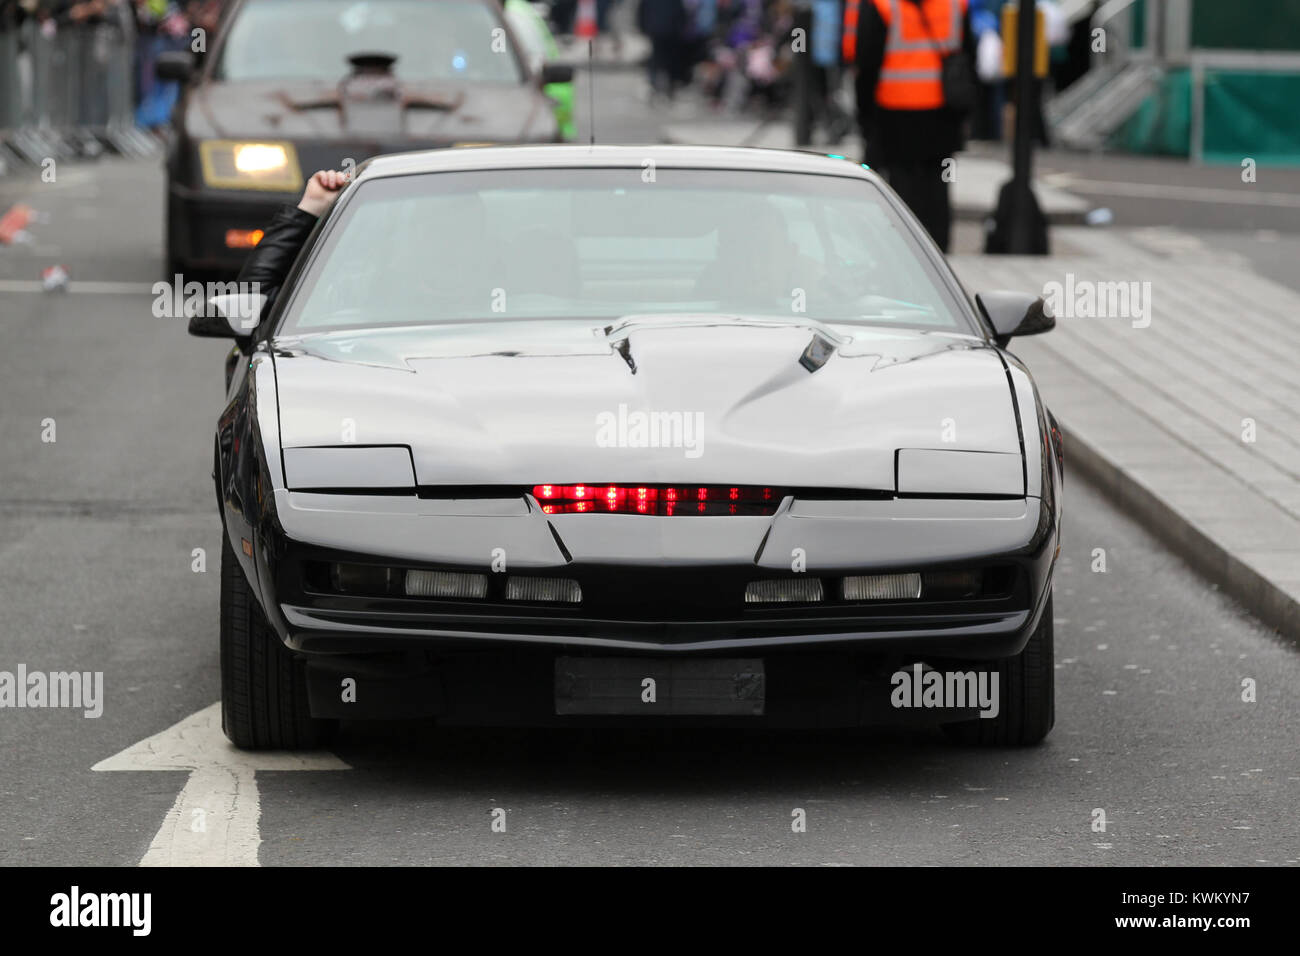 LONDON - JAN 01, 2018: Knight Rider Car K I T T takes part in the